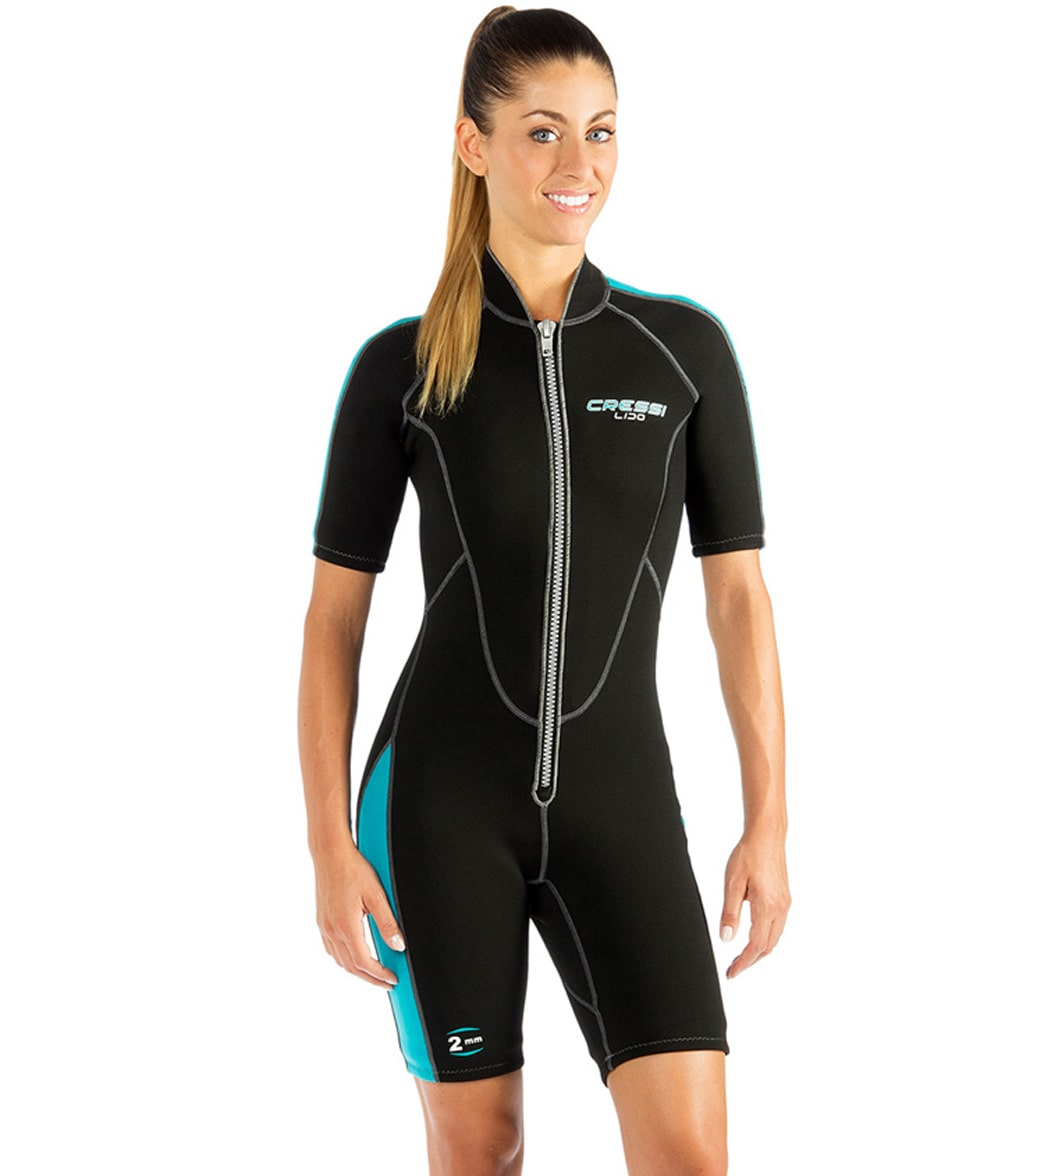 Cressi Women s 2mm Lido Shorty Wetsuit at SwimOutlet.com - Free Shipping 858048521